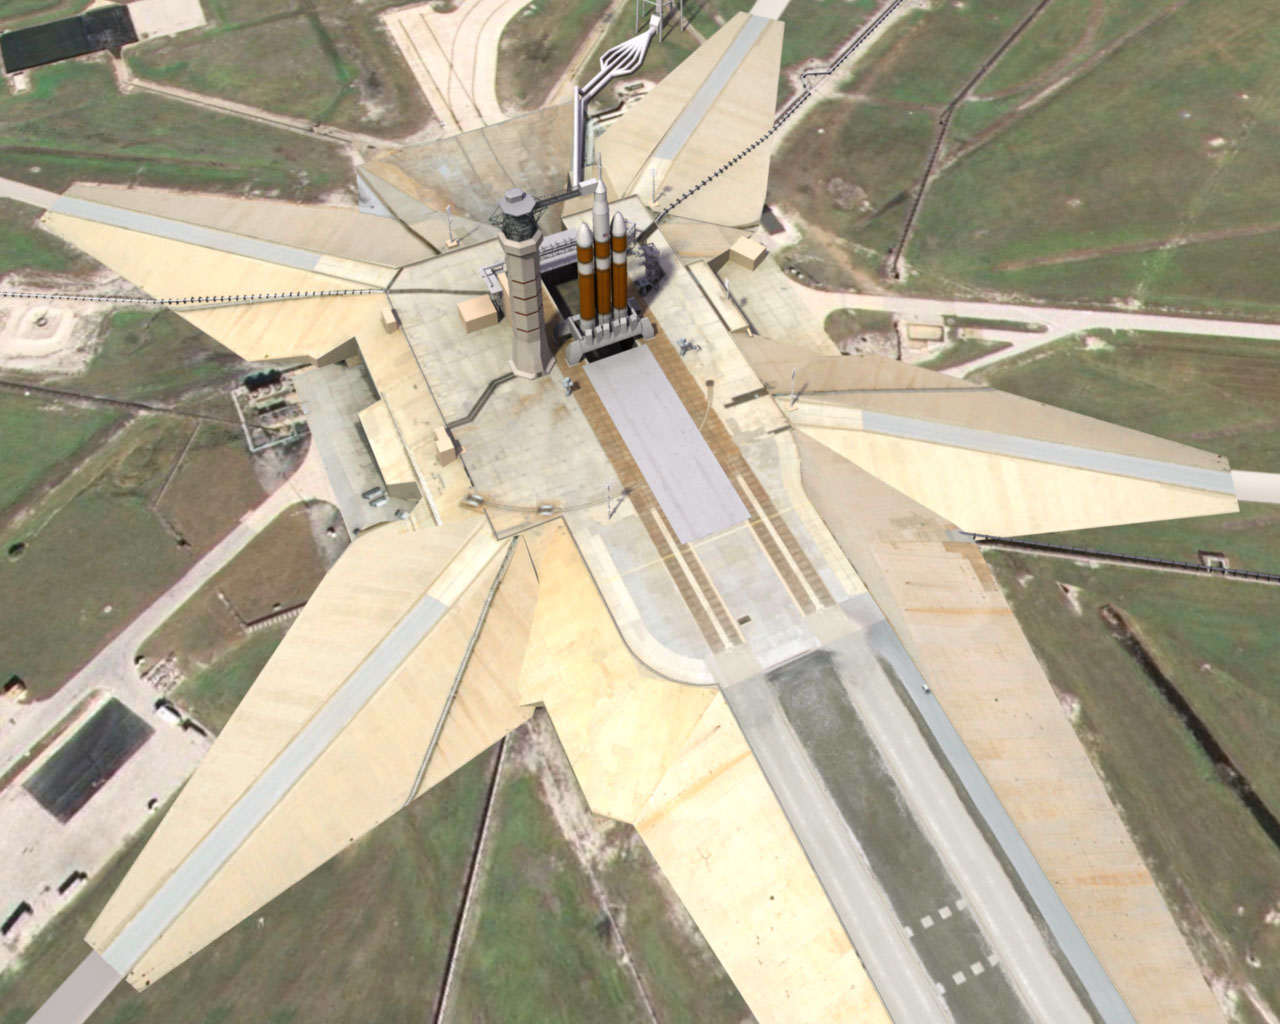 NASA - Evolution of Launch Pad 39A Ever-changing